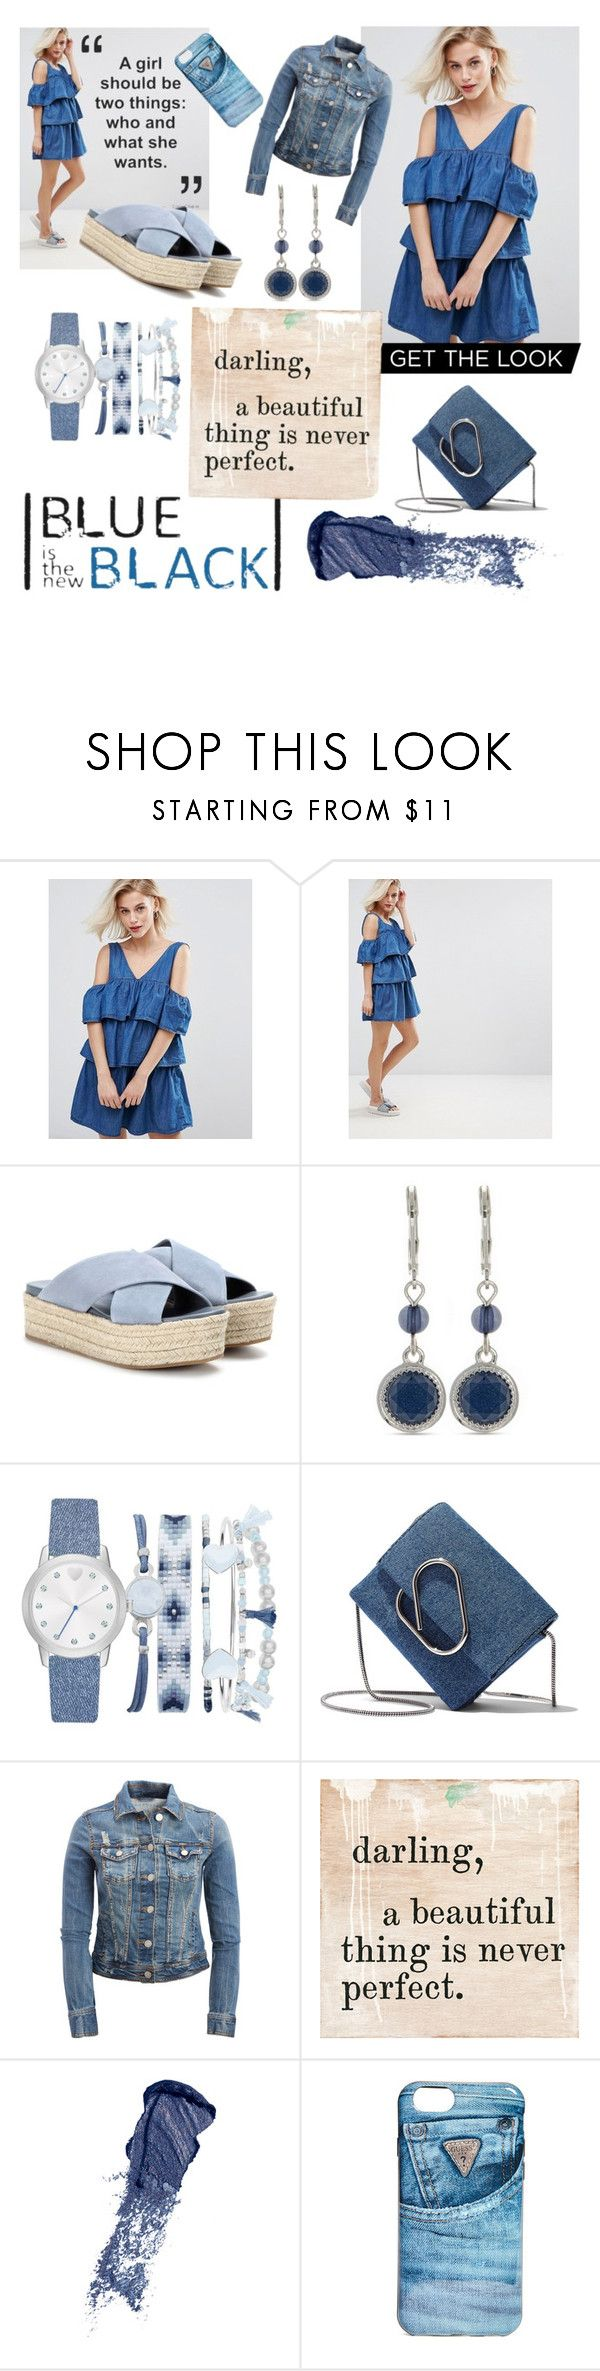 """Denim Darling"" by amartin10 ❤ liked on Polyvore featuring Pull&Bear, Miu Miu, Nine West, A.X.N.Y., 3.1 Phillip Lim, Aéropostale, Bobbi Brown Cosmetics and GUESS"